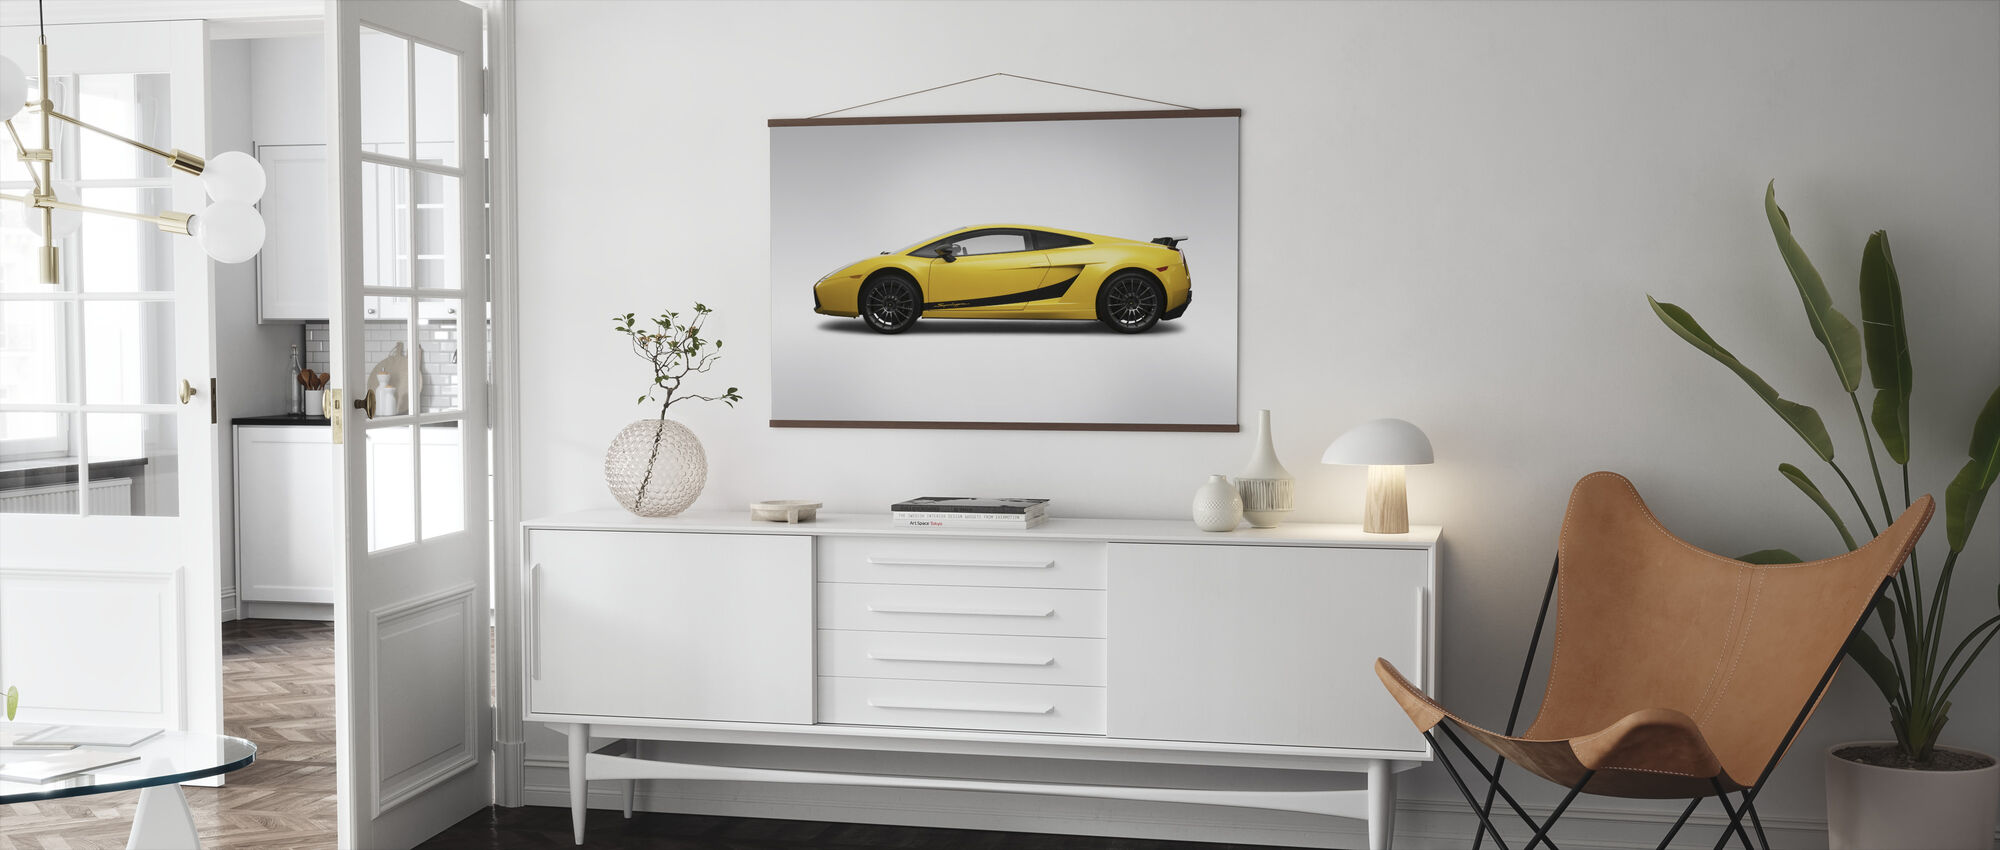 Superleggera - Poster - Living Room